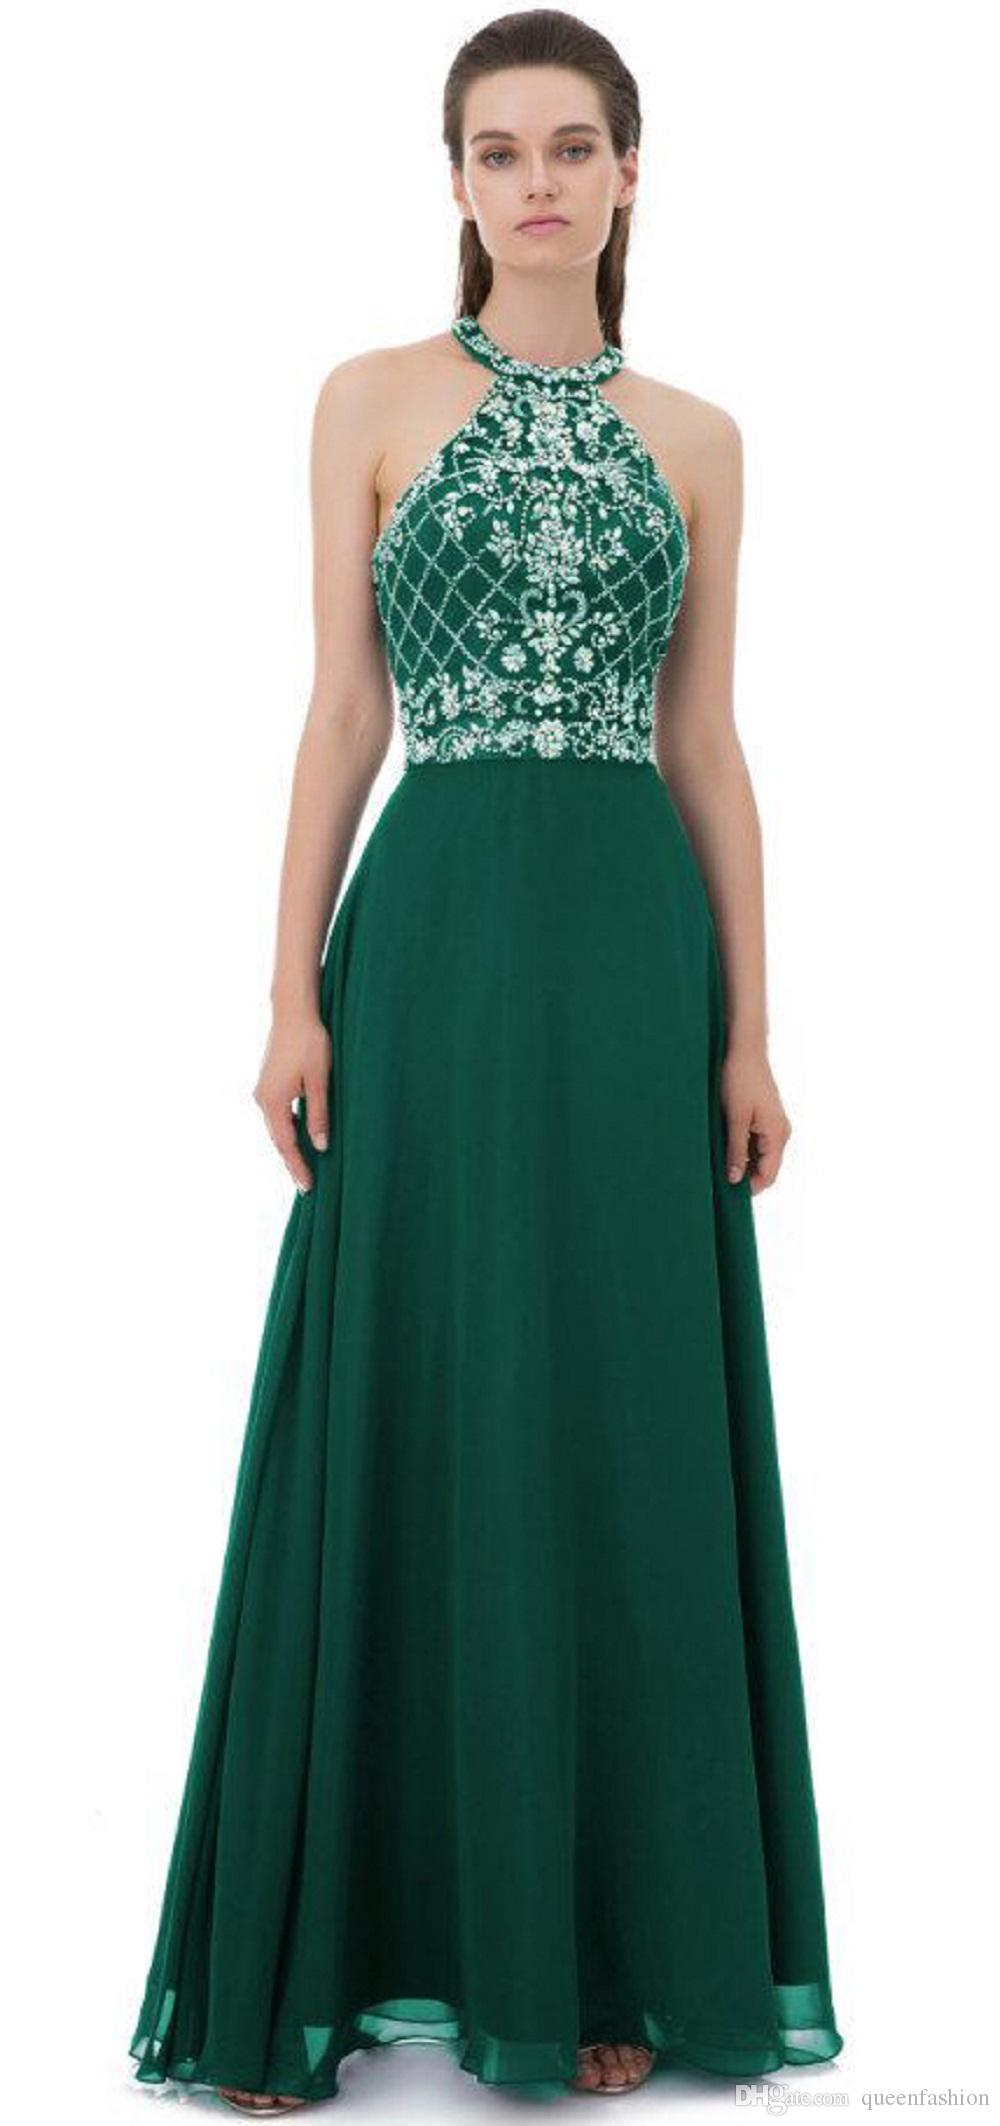 2021 Prom Dresses Long Maxi Halter Keyhole Back Formal Evening Dresses Crystal Backless Chiffon Graduation Party Gowns